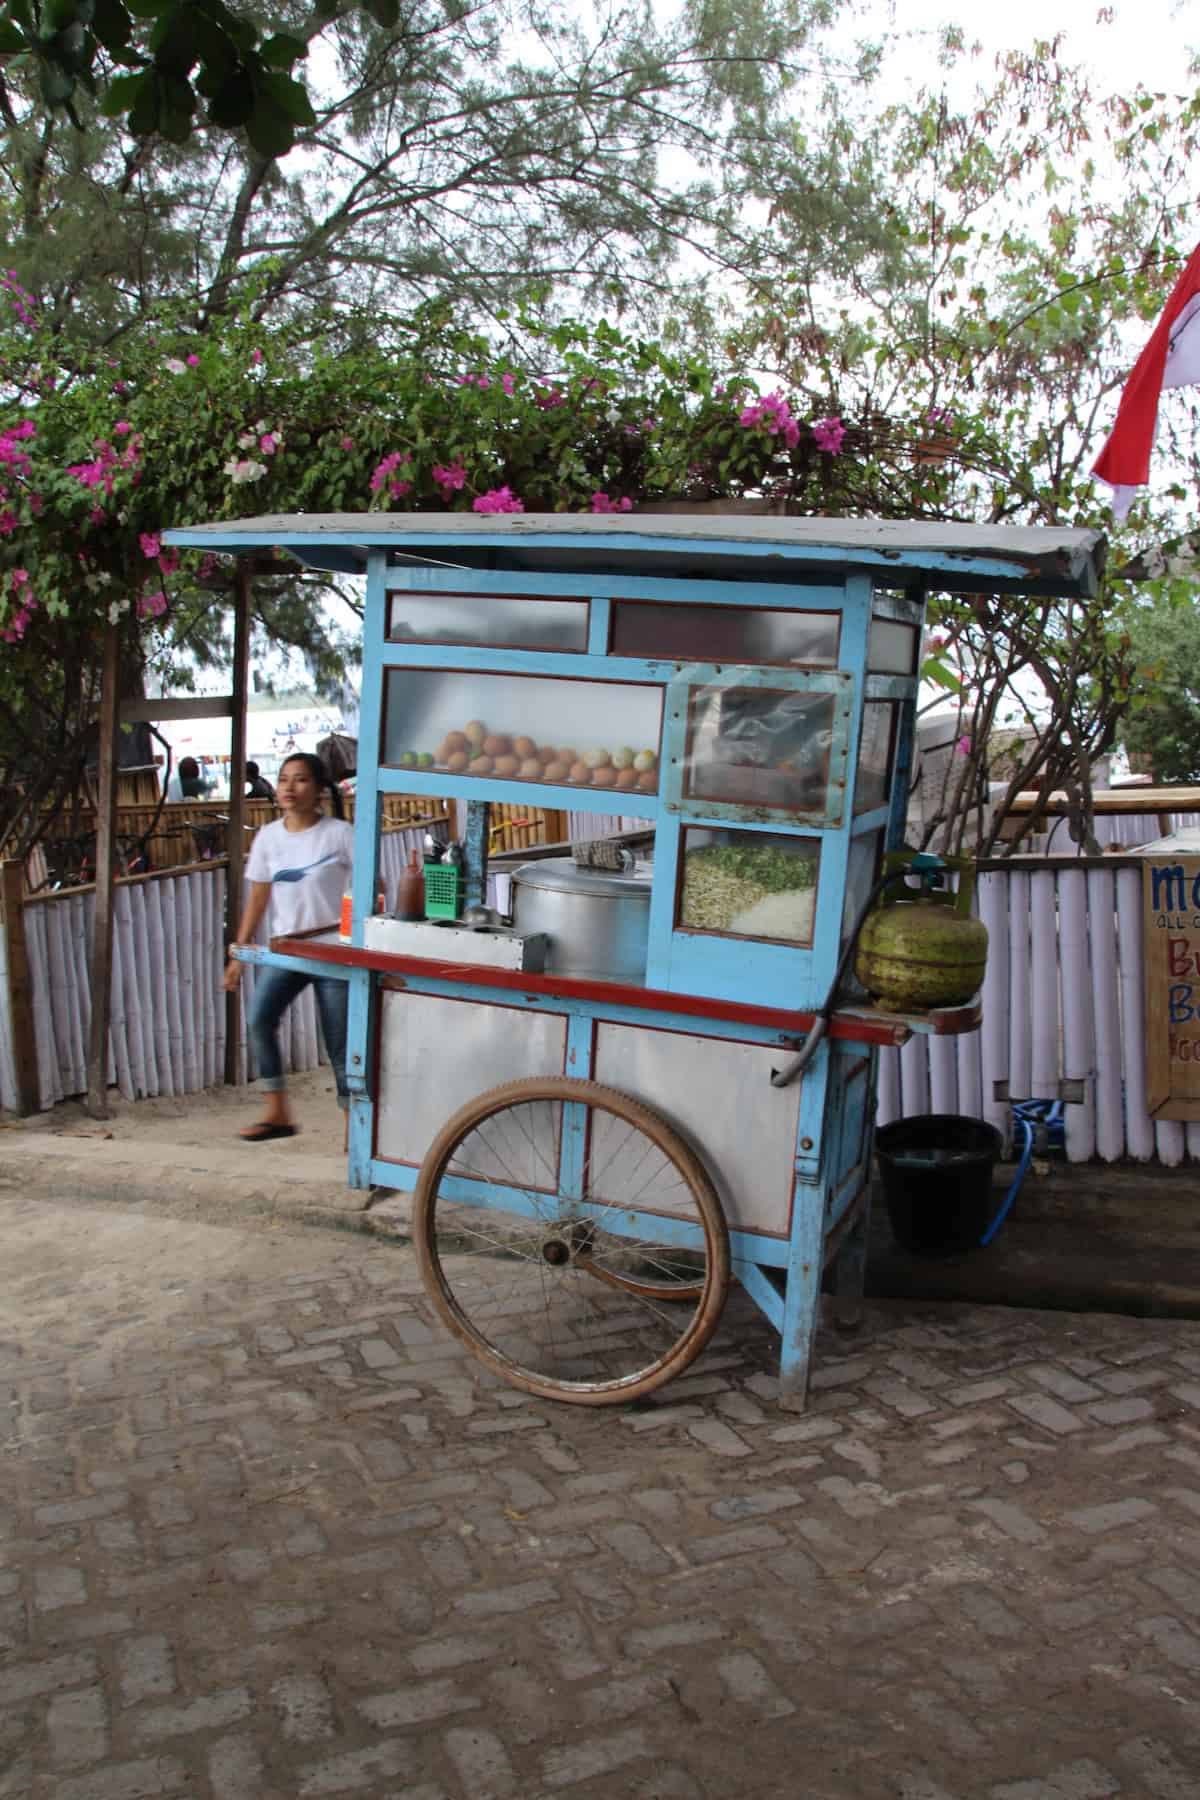 Light blue cart used for street food vendor in Indonesia.